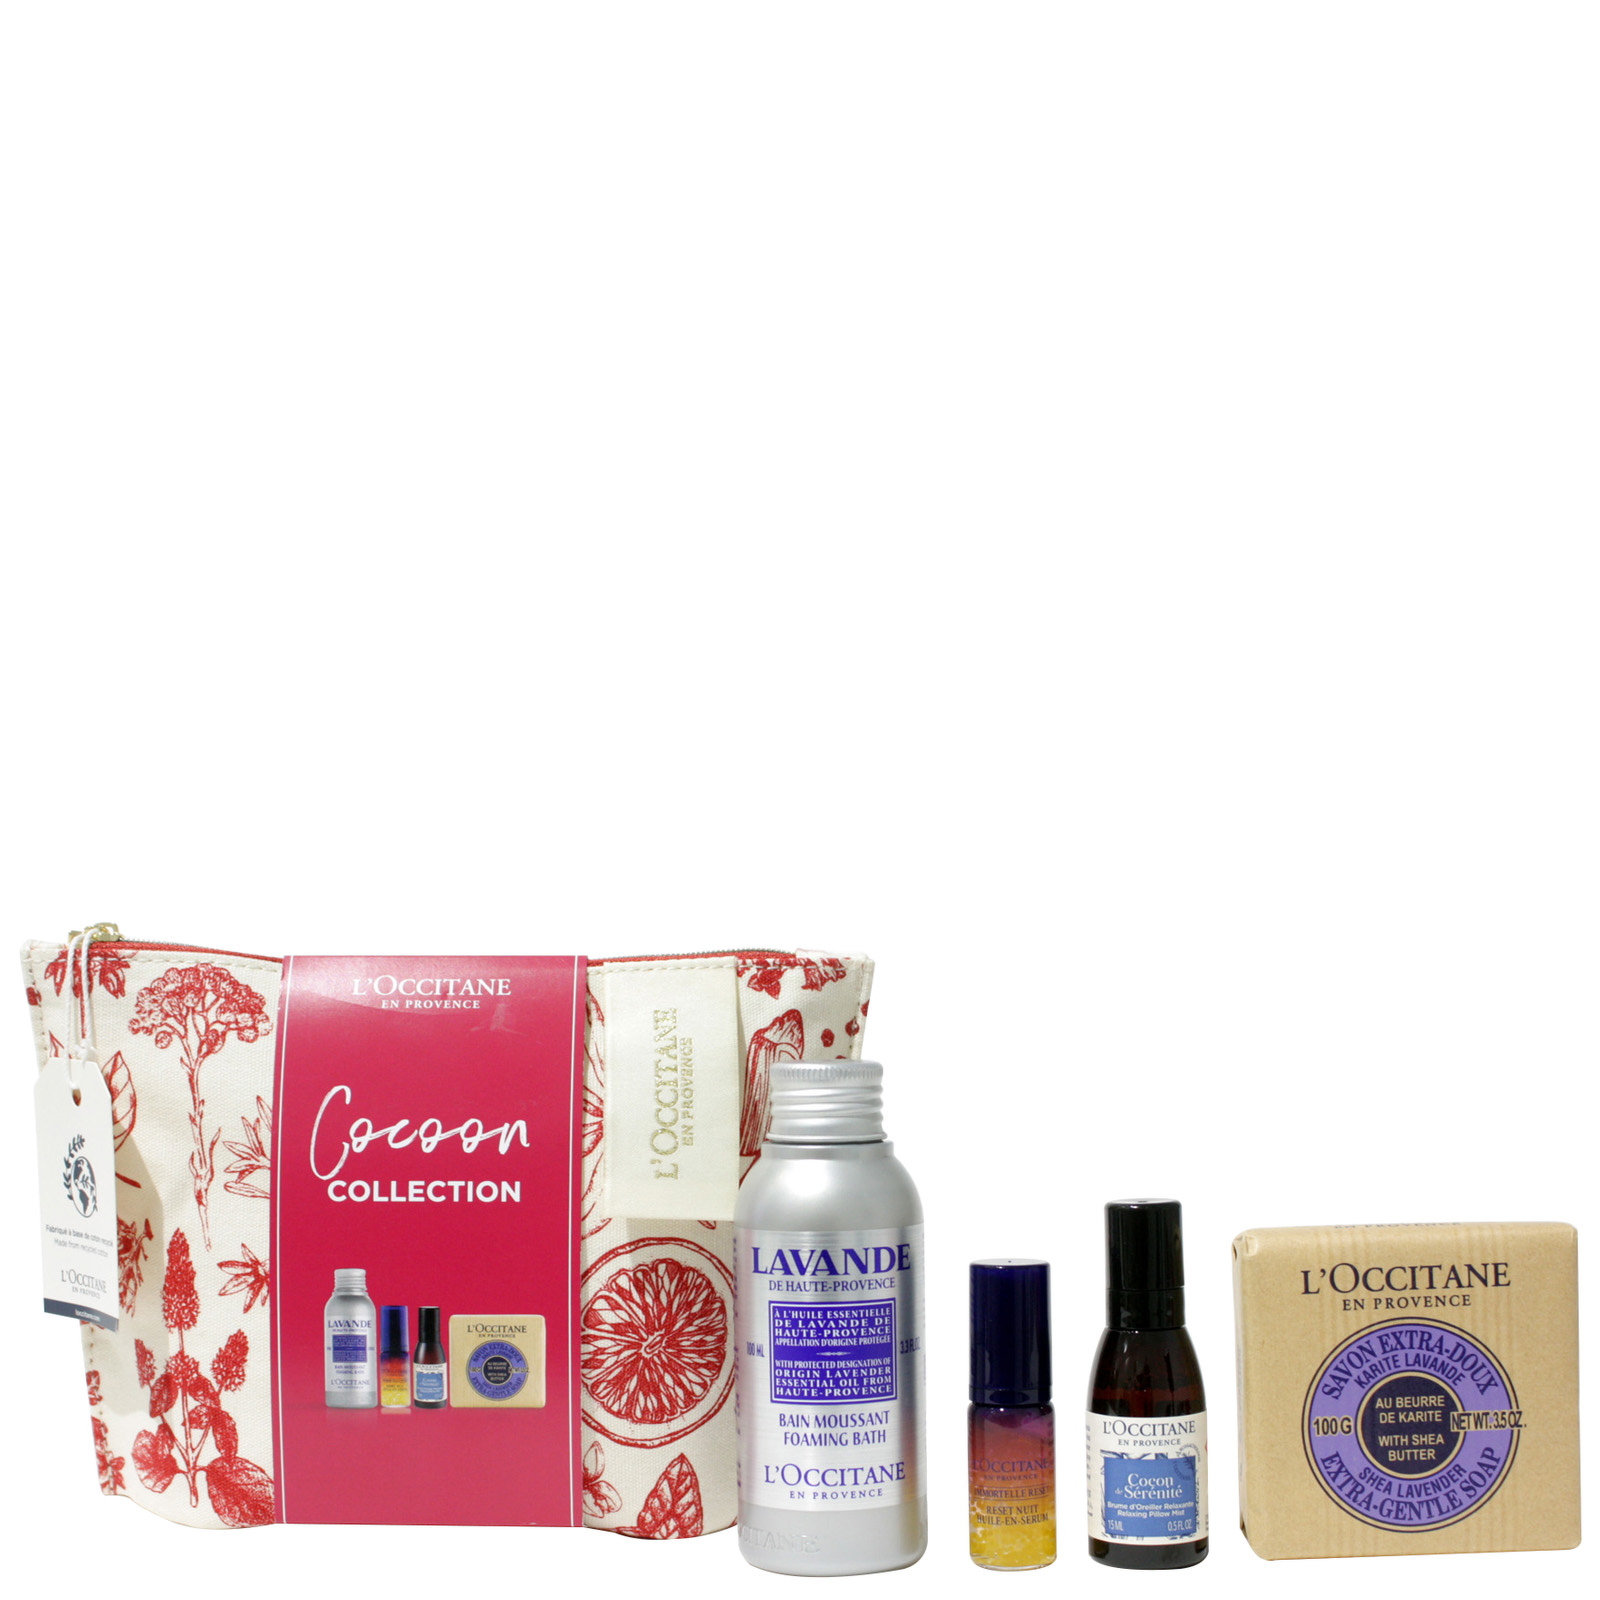 L'Occitane Gifts Cocoon Collection